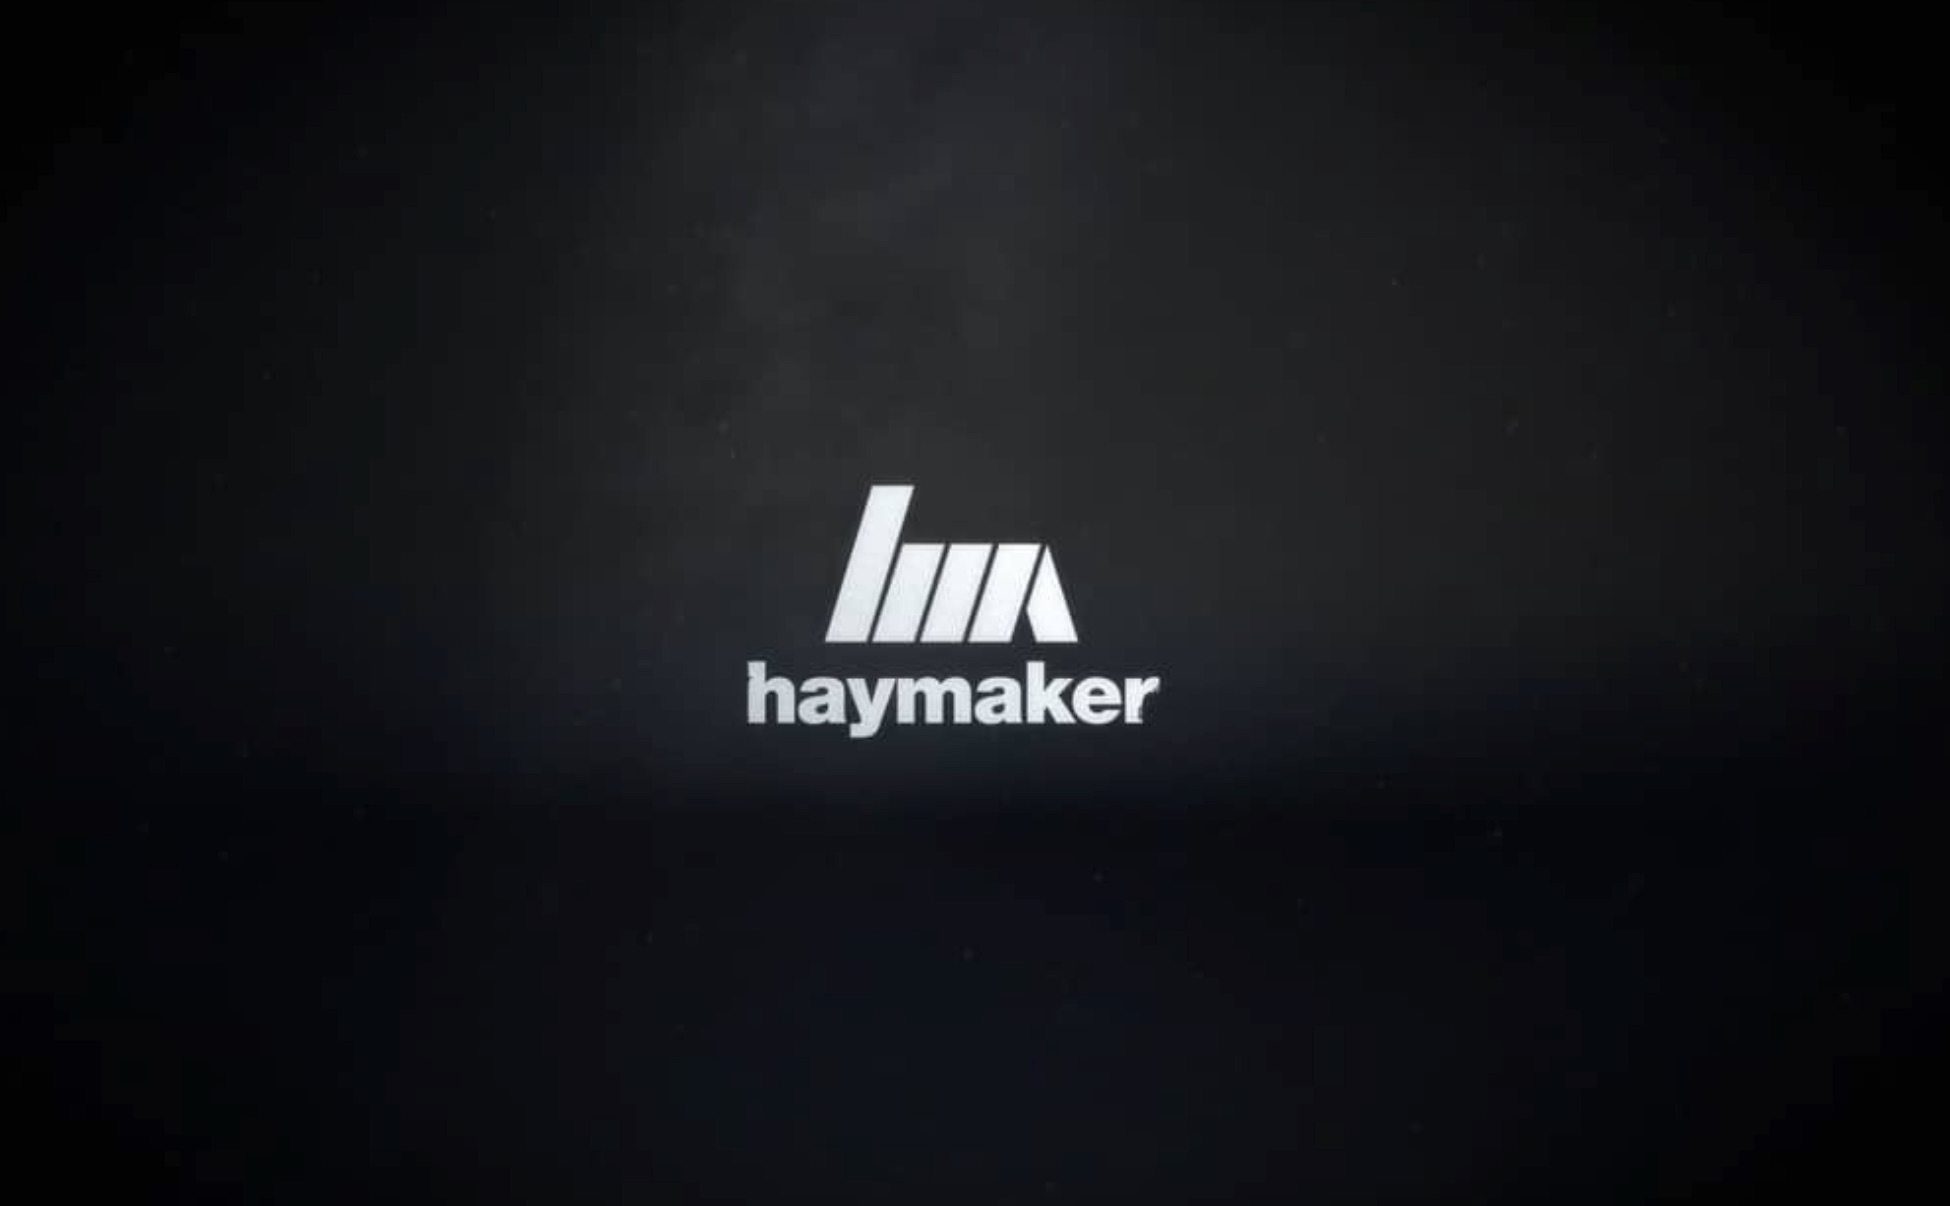 Motion_Graphics_-_Haymaker_Showreel_2015_-_Motion_Design